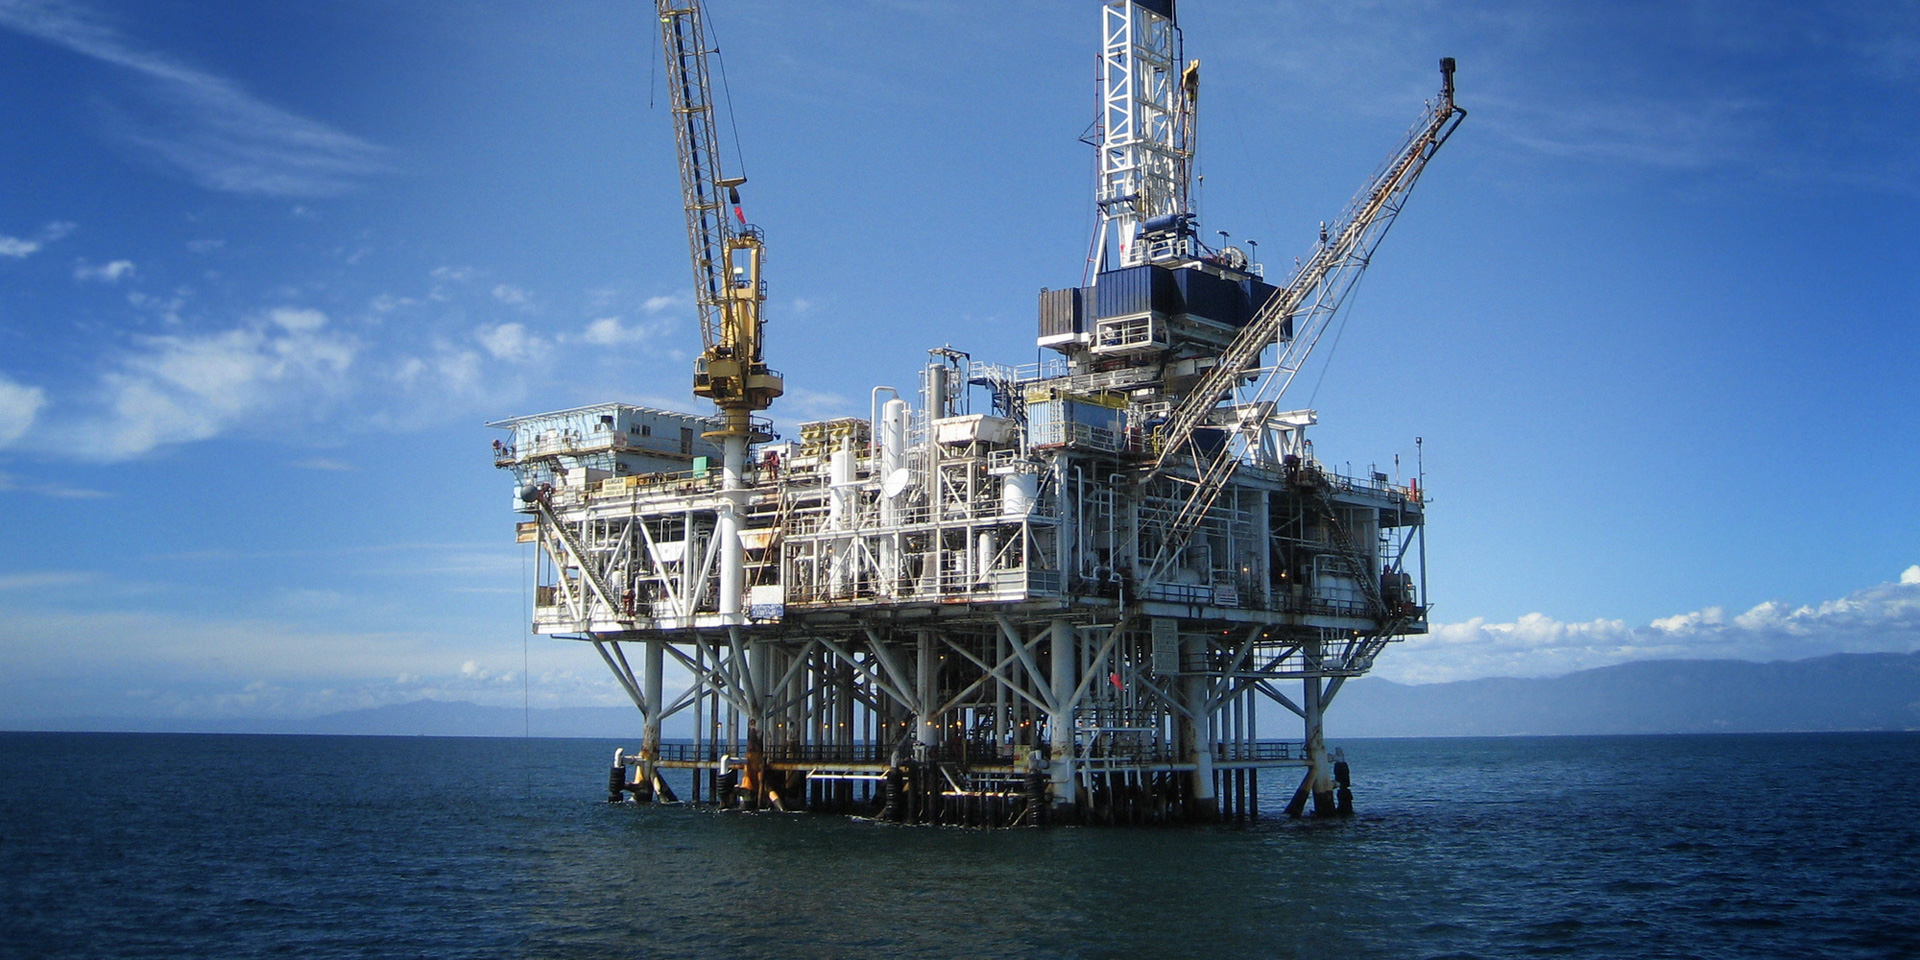 Hydraulics for the Oil & Gas Industry